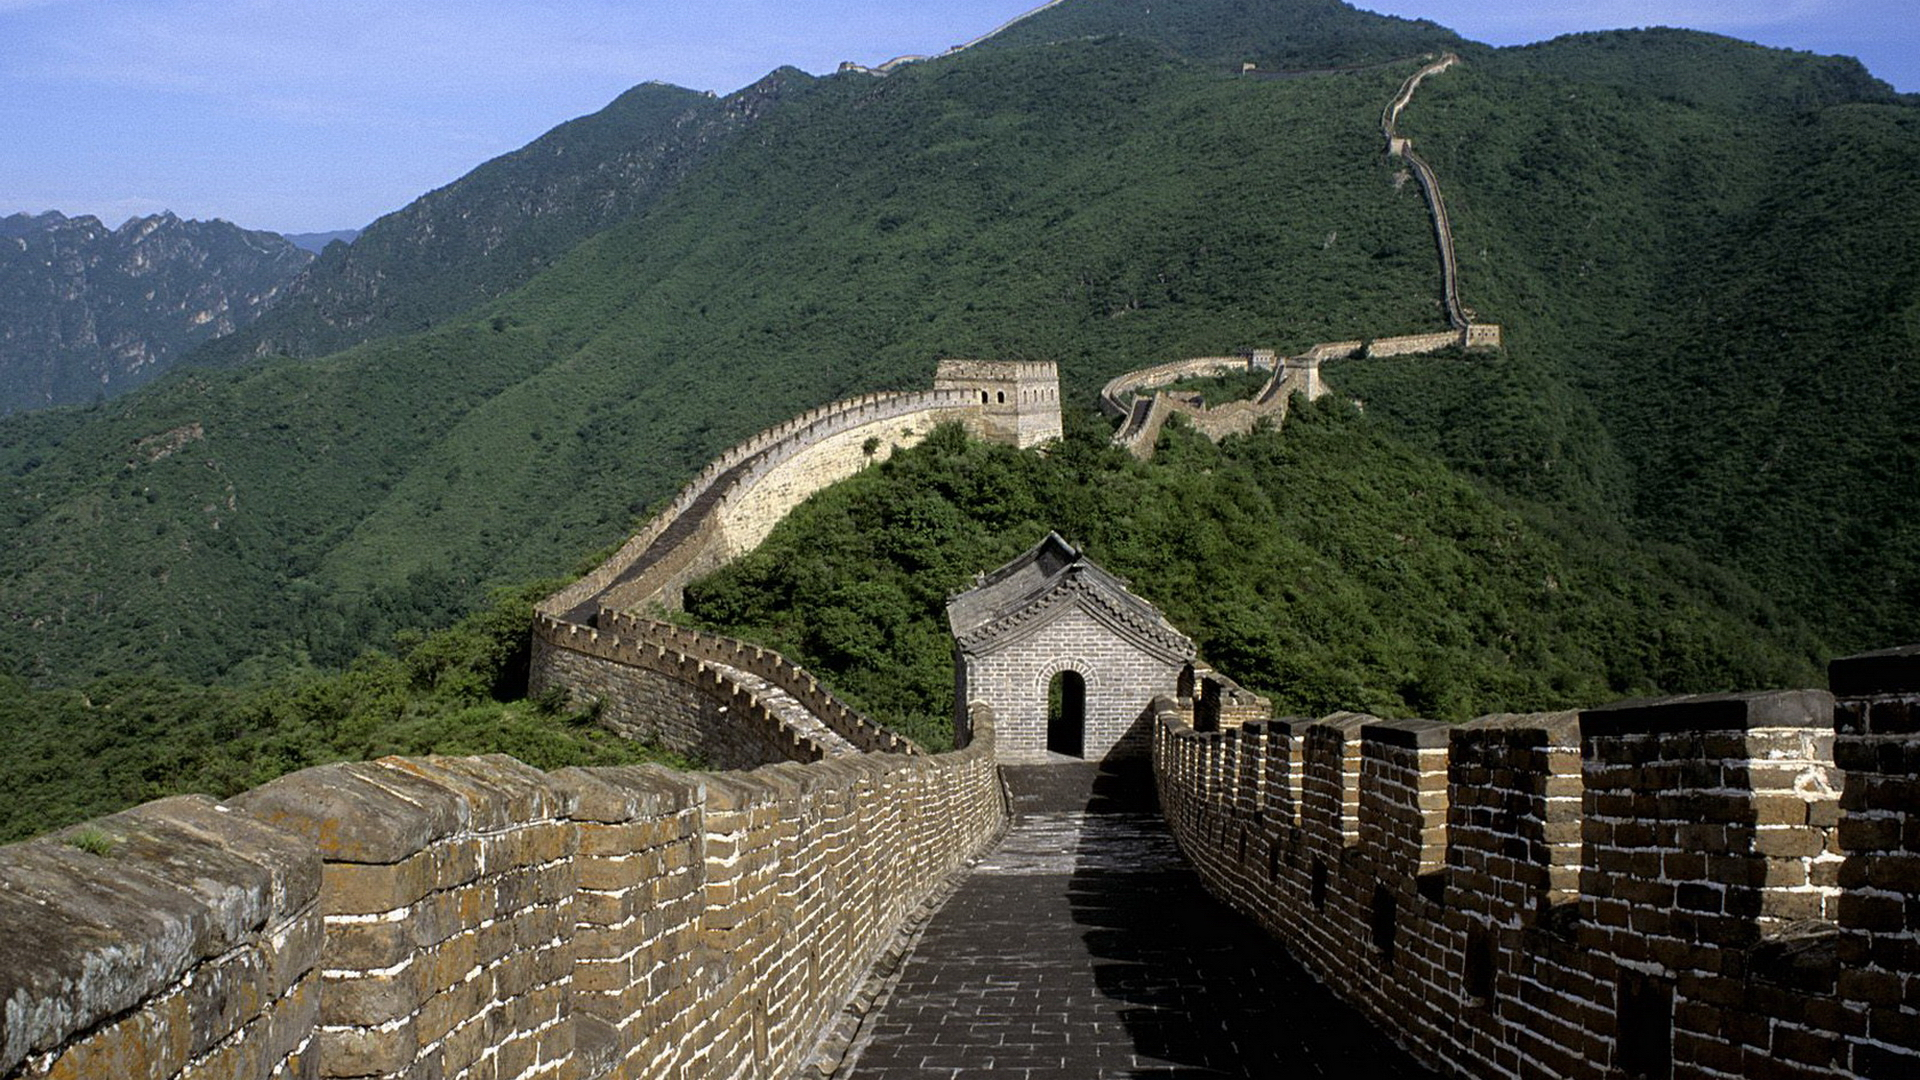 Great Wall Of China clipart Great Wall Of China Wallpaper High Resolution Wall Building MB Wallpapers 77